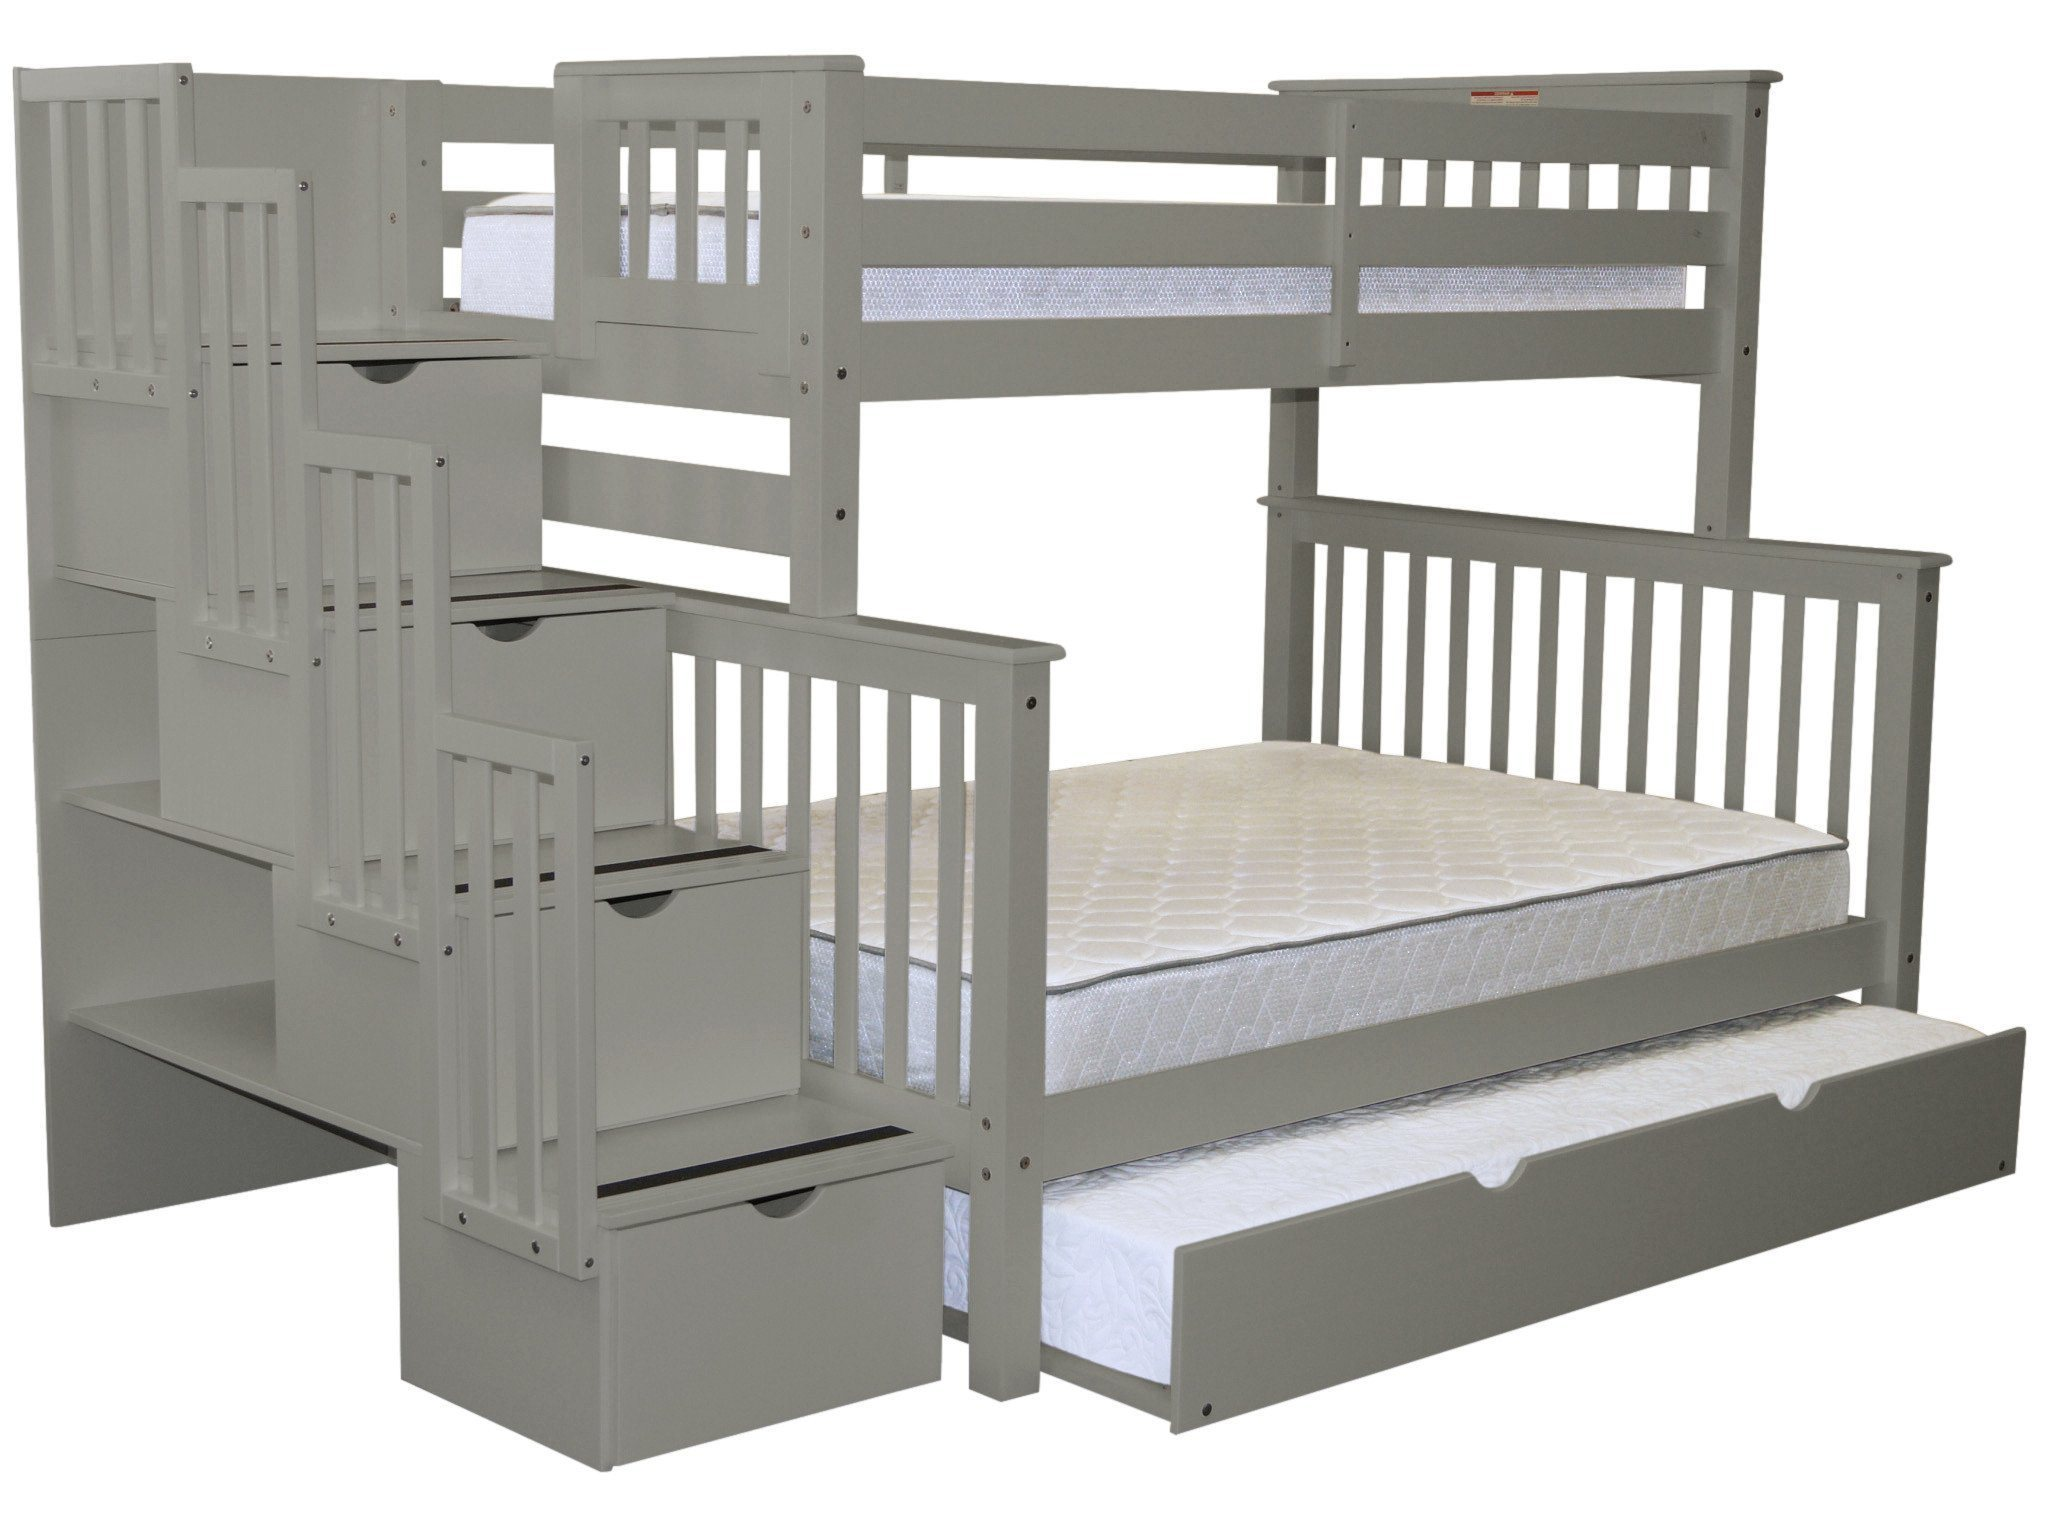 Bedz King Stairway Bunk Beds Twin Over Full With 4 Drawers In The Steps And  A